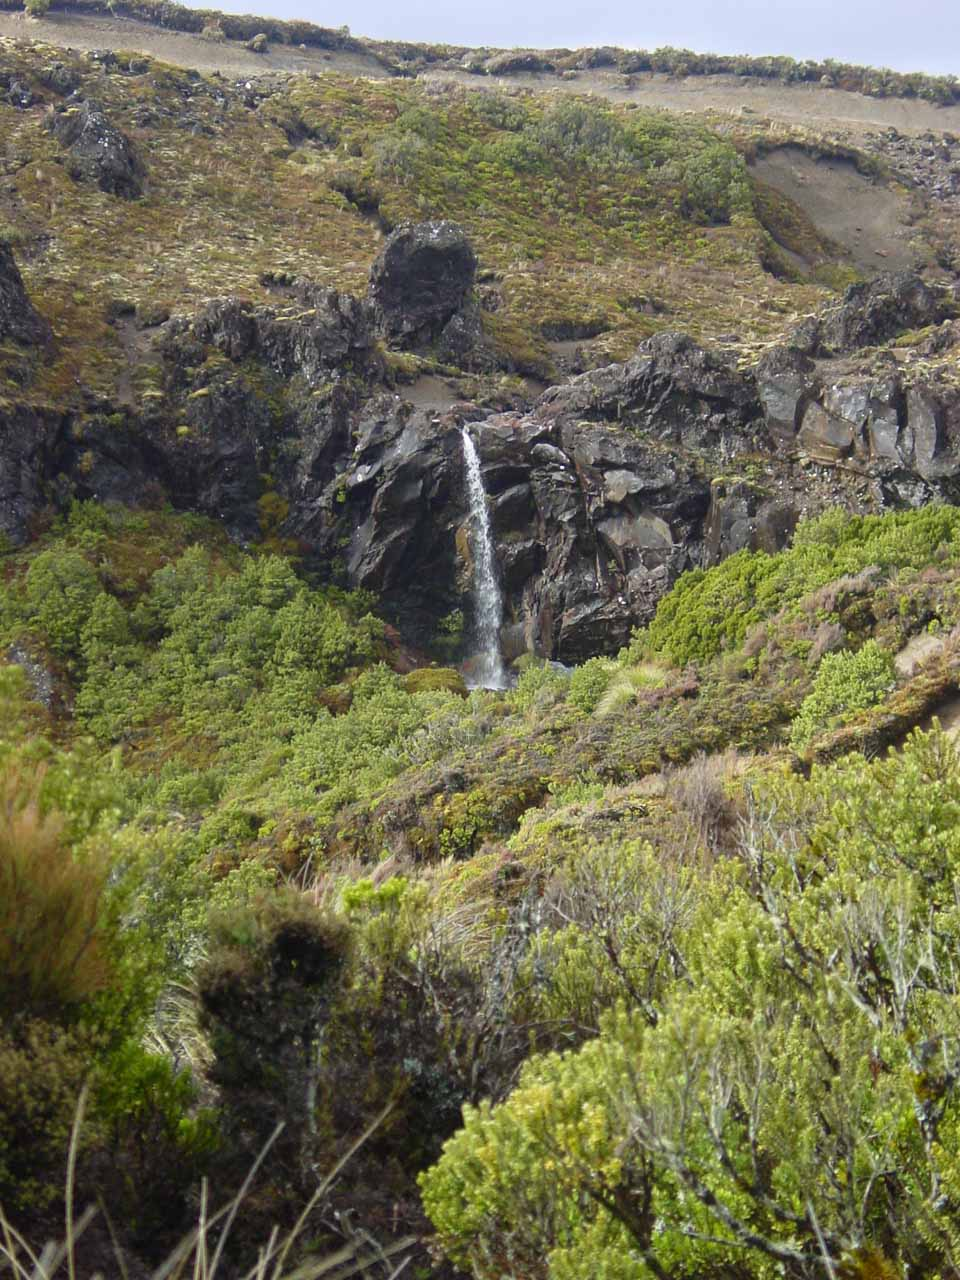 Some other surprise ephemeral waterfall seen on the return hike to Whakapapa Village from Taranaki Falls